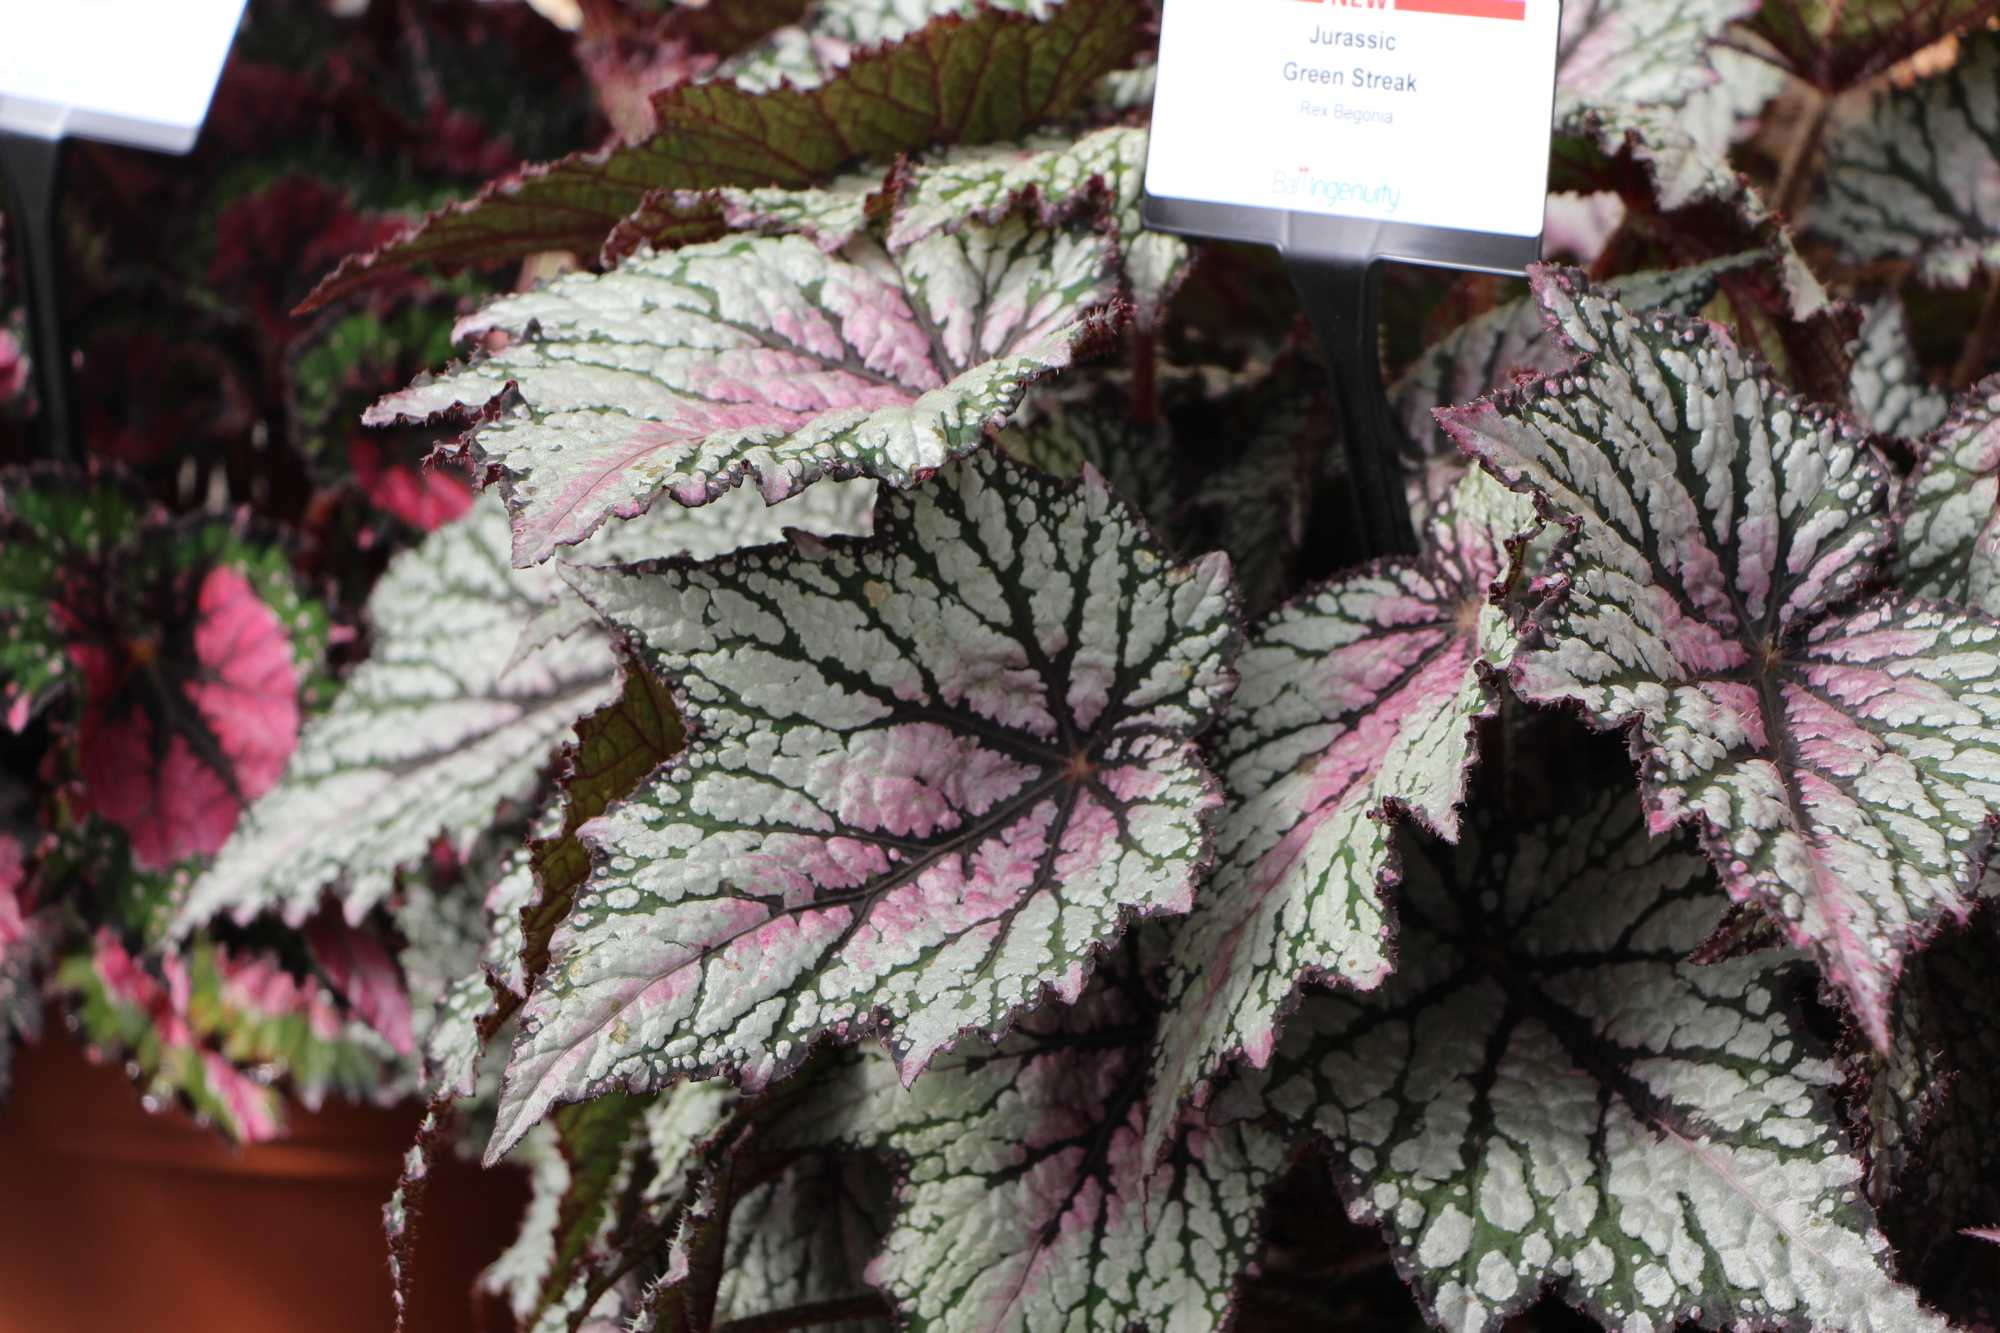 Jurassic Green Streak rex begonia from Ball Ingenuity